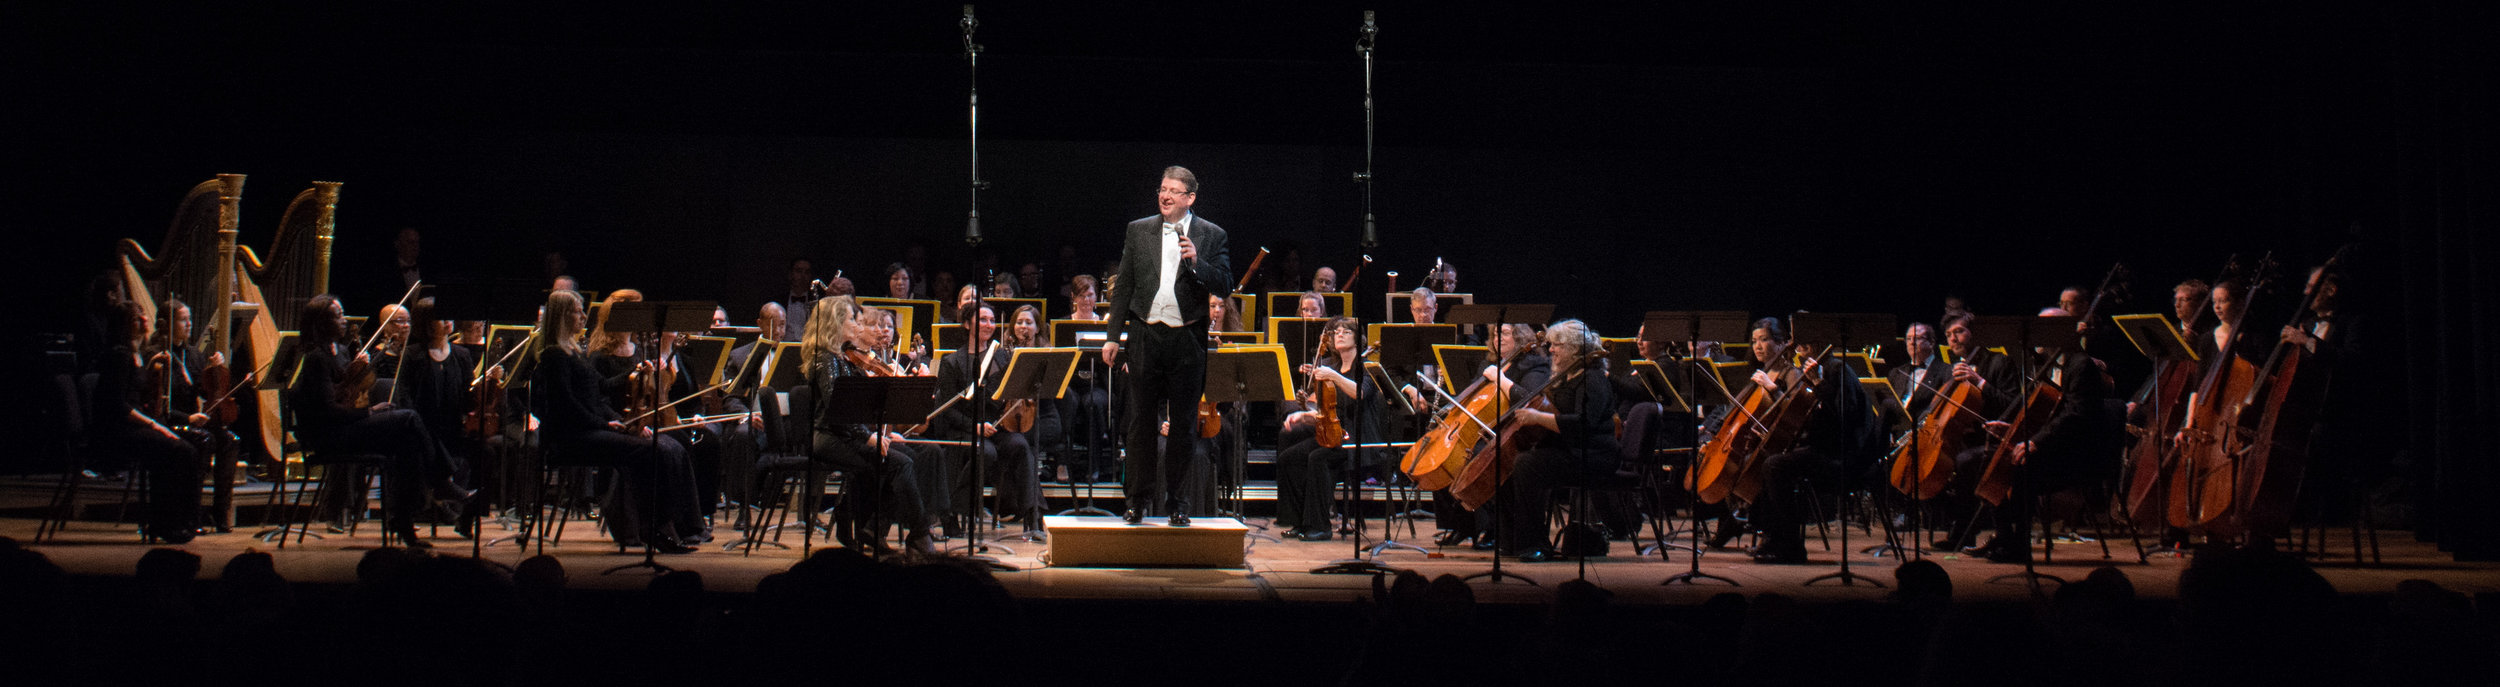 Conductor Antony Walker and the Washington Concert Opera Orchestra. Photo by Don Lassell; courtesy of Washington Concert Opera.